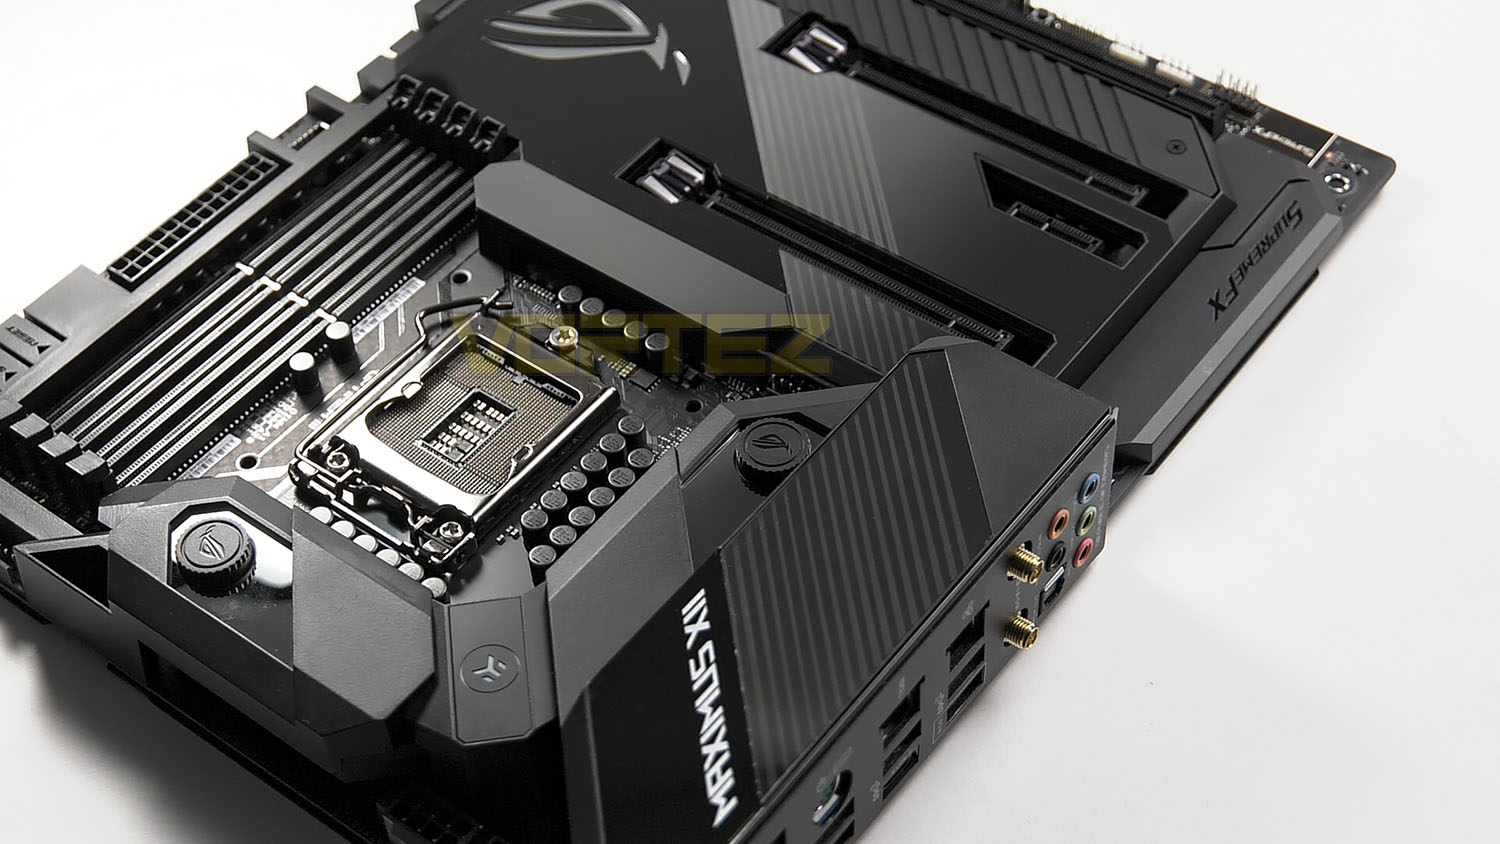 ASUS ROG Maximus XII Formula Review - Introduction